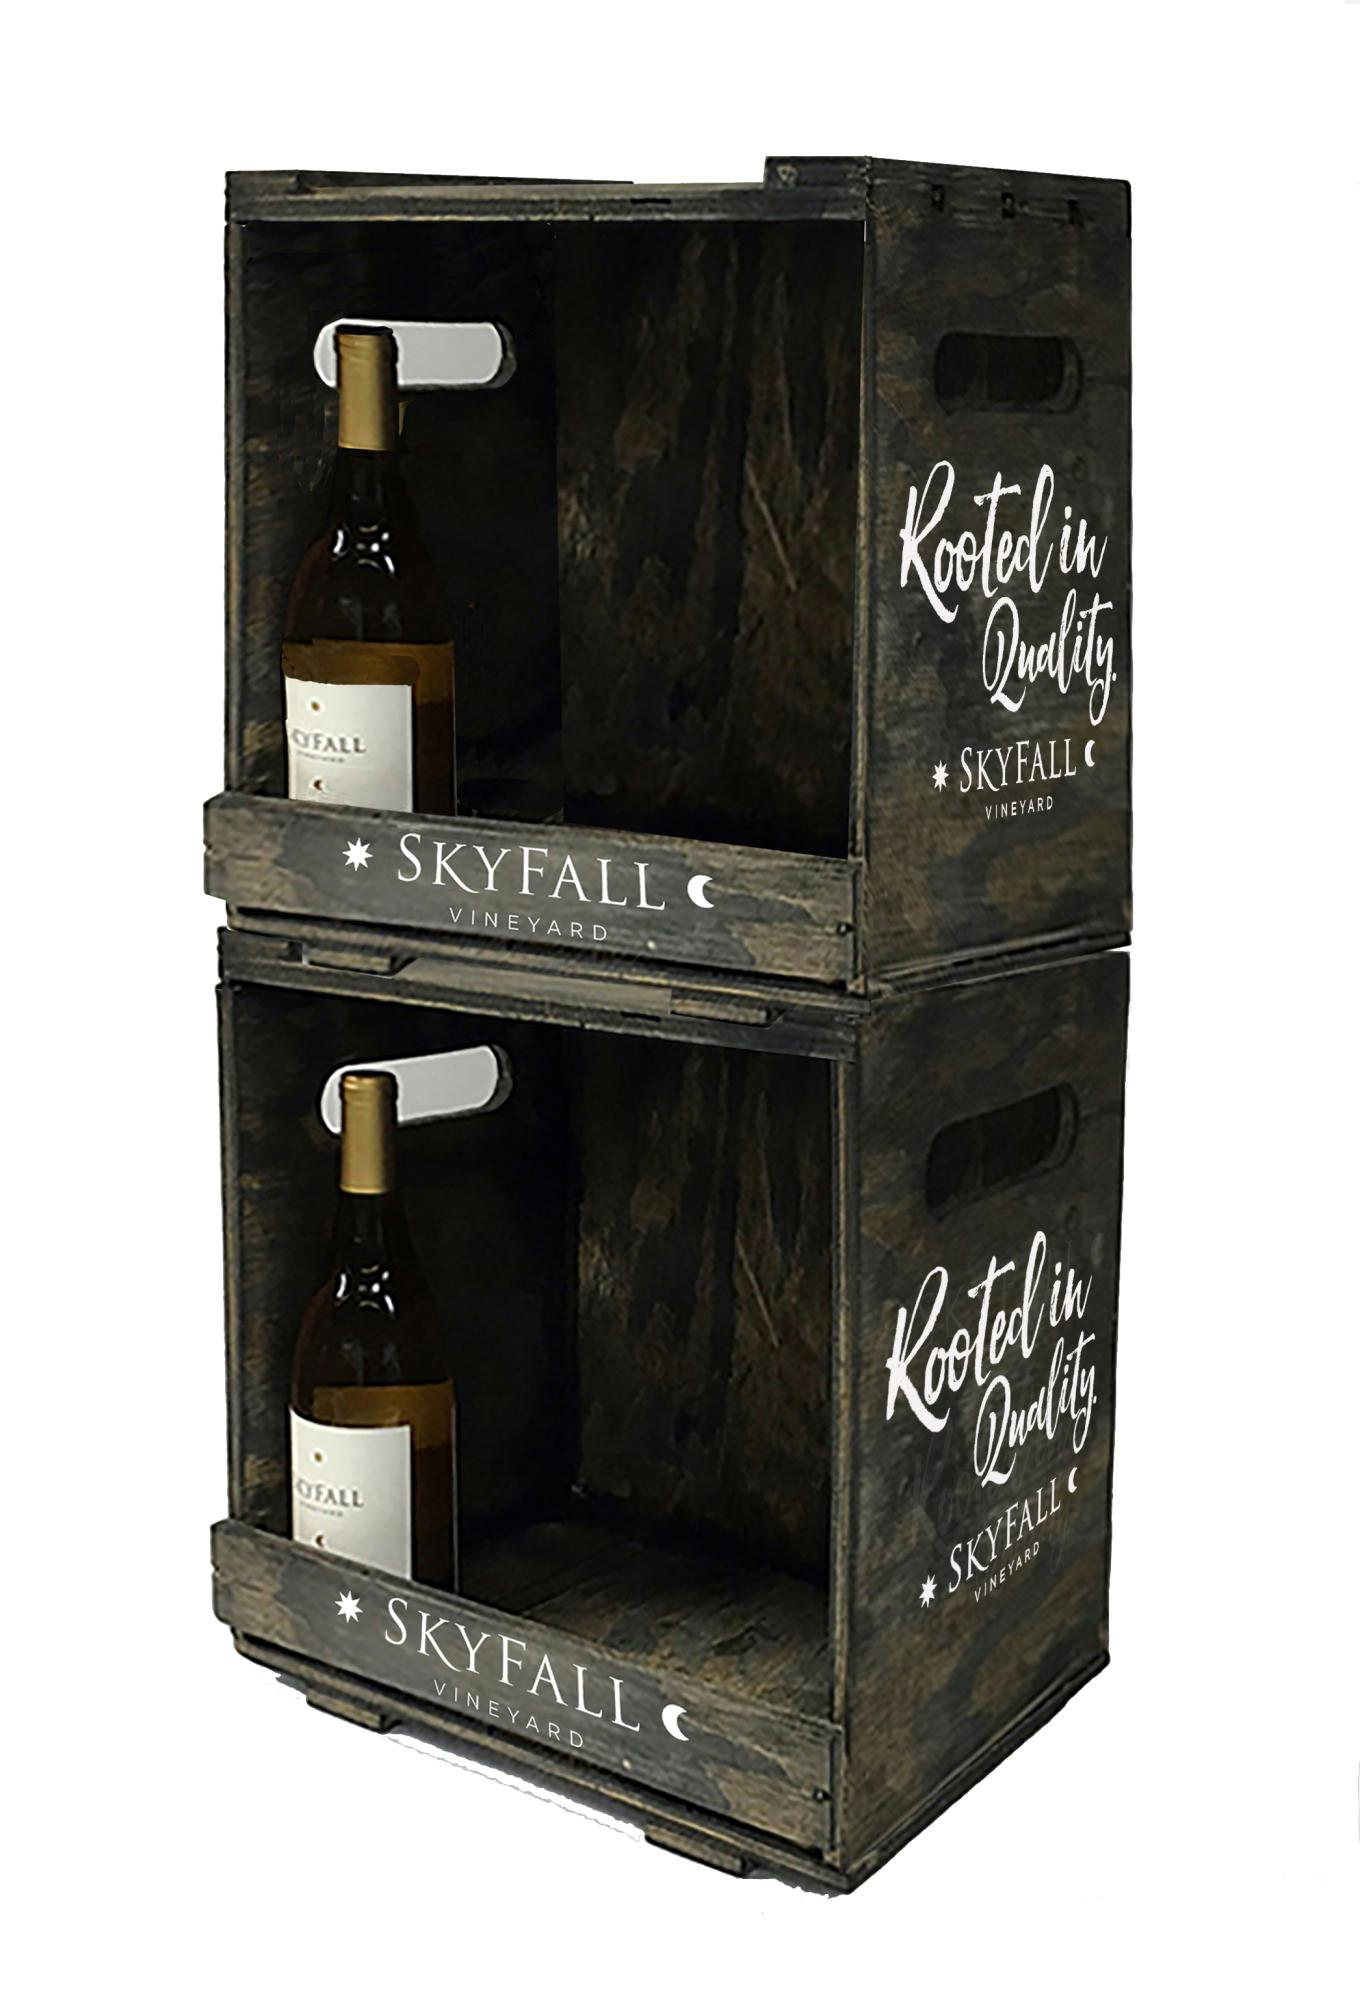 SKY_FALL_Wine_Crate_White.jpg